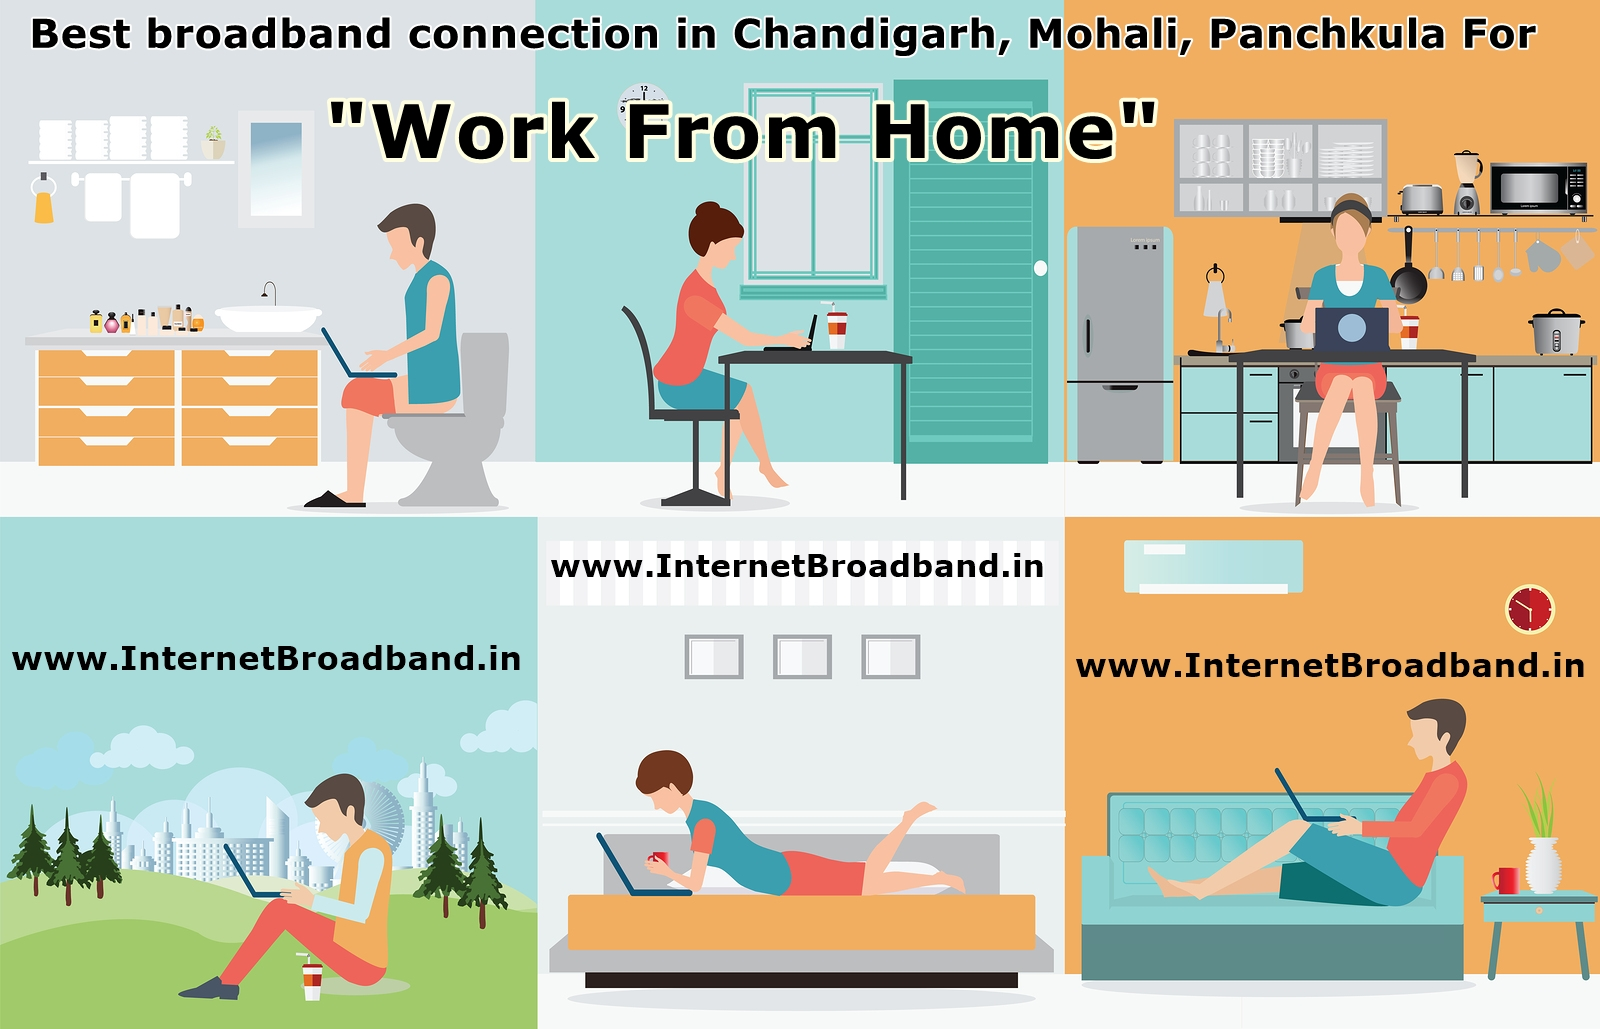 best broadband for Work from Home in Chandigarh Mohali Panchkula Kharar Zirakpur